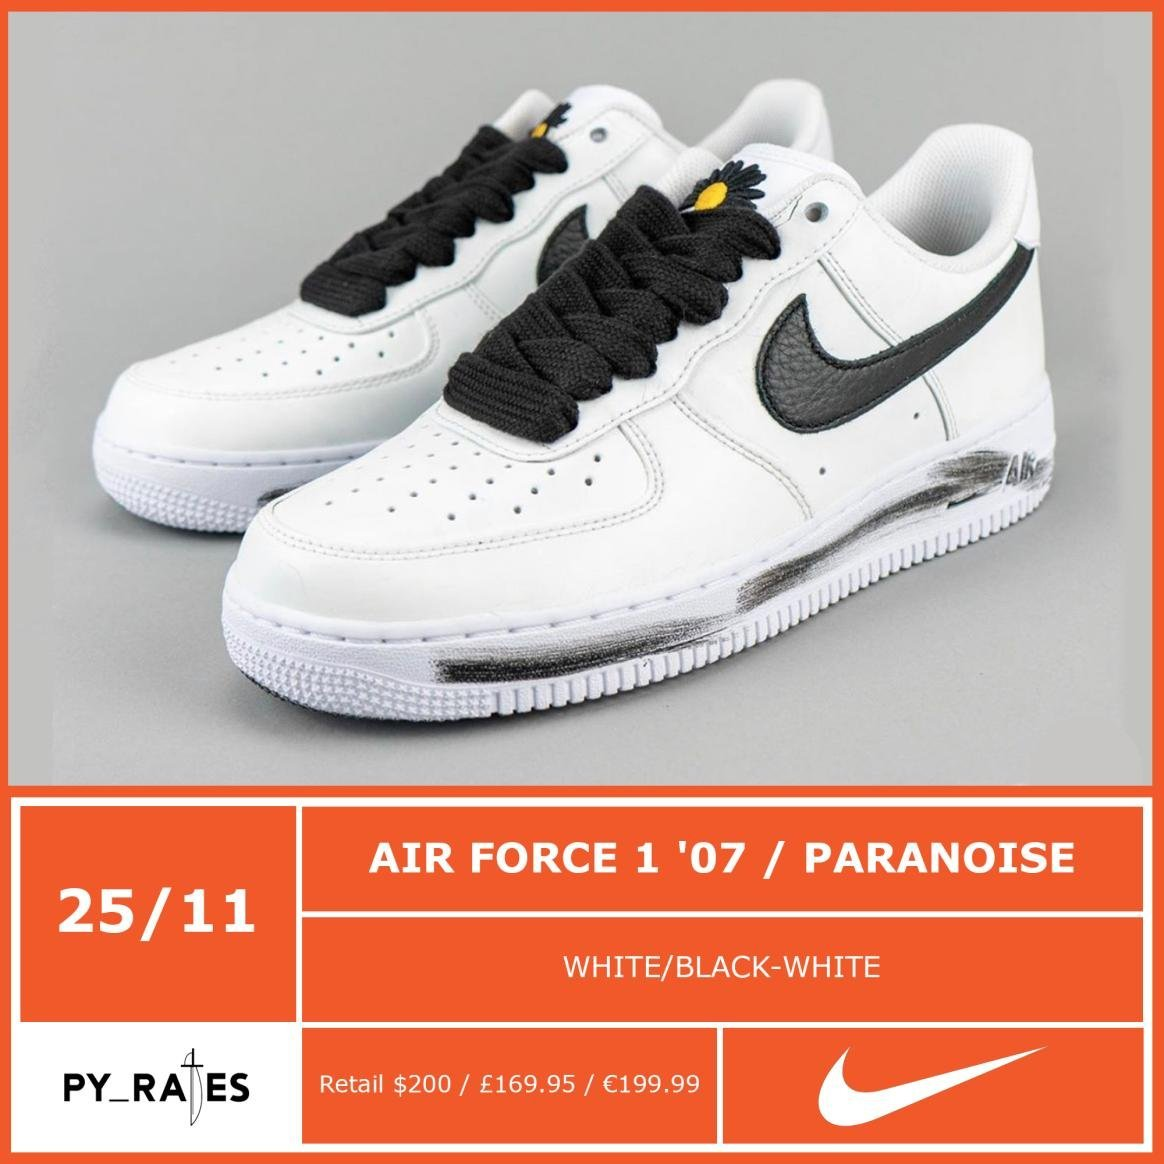 PARANOISE Nike Air Force 1 White Black DD3223-100 Release Info